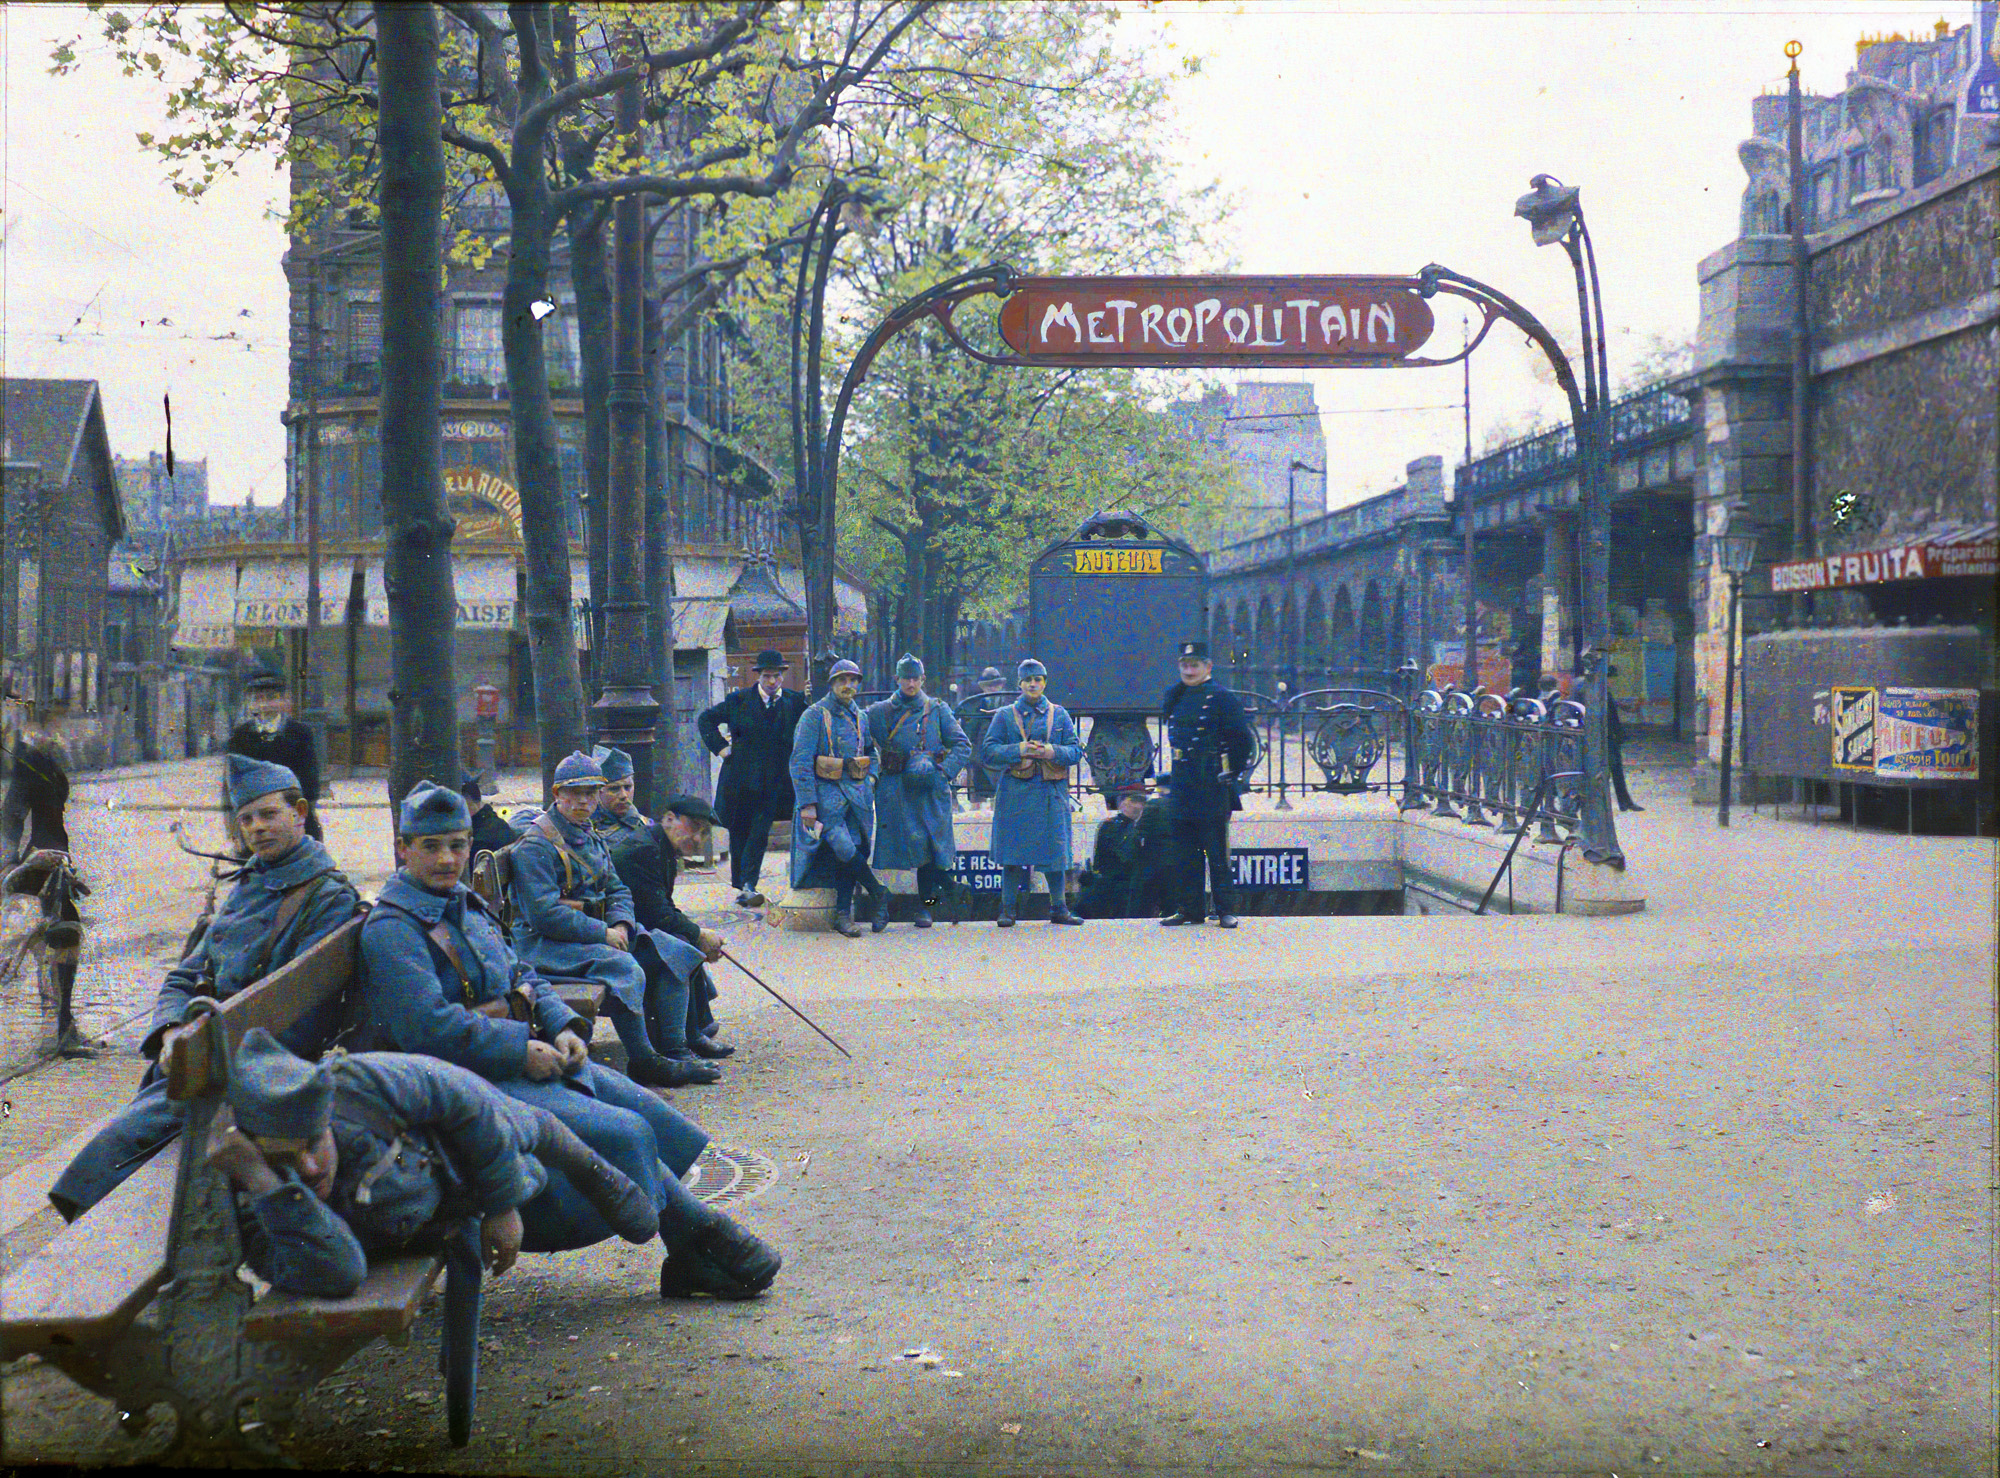 1920 On May Day soldiers guarding the Auteuil Metro station on the Boulevard Exelmans in Paris by Gadmer1